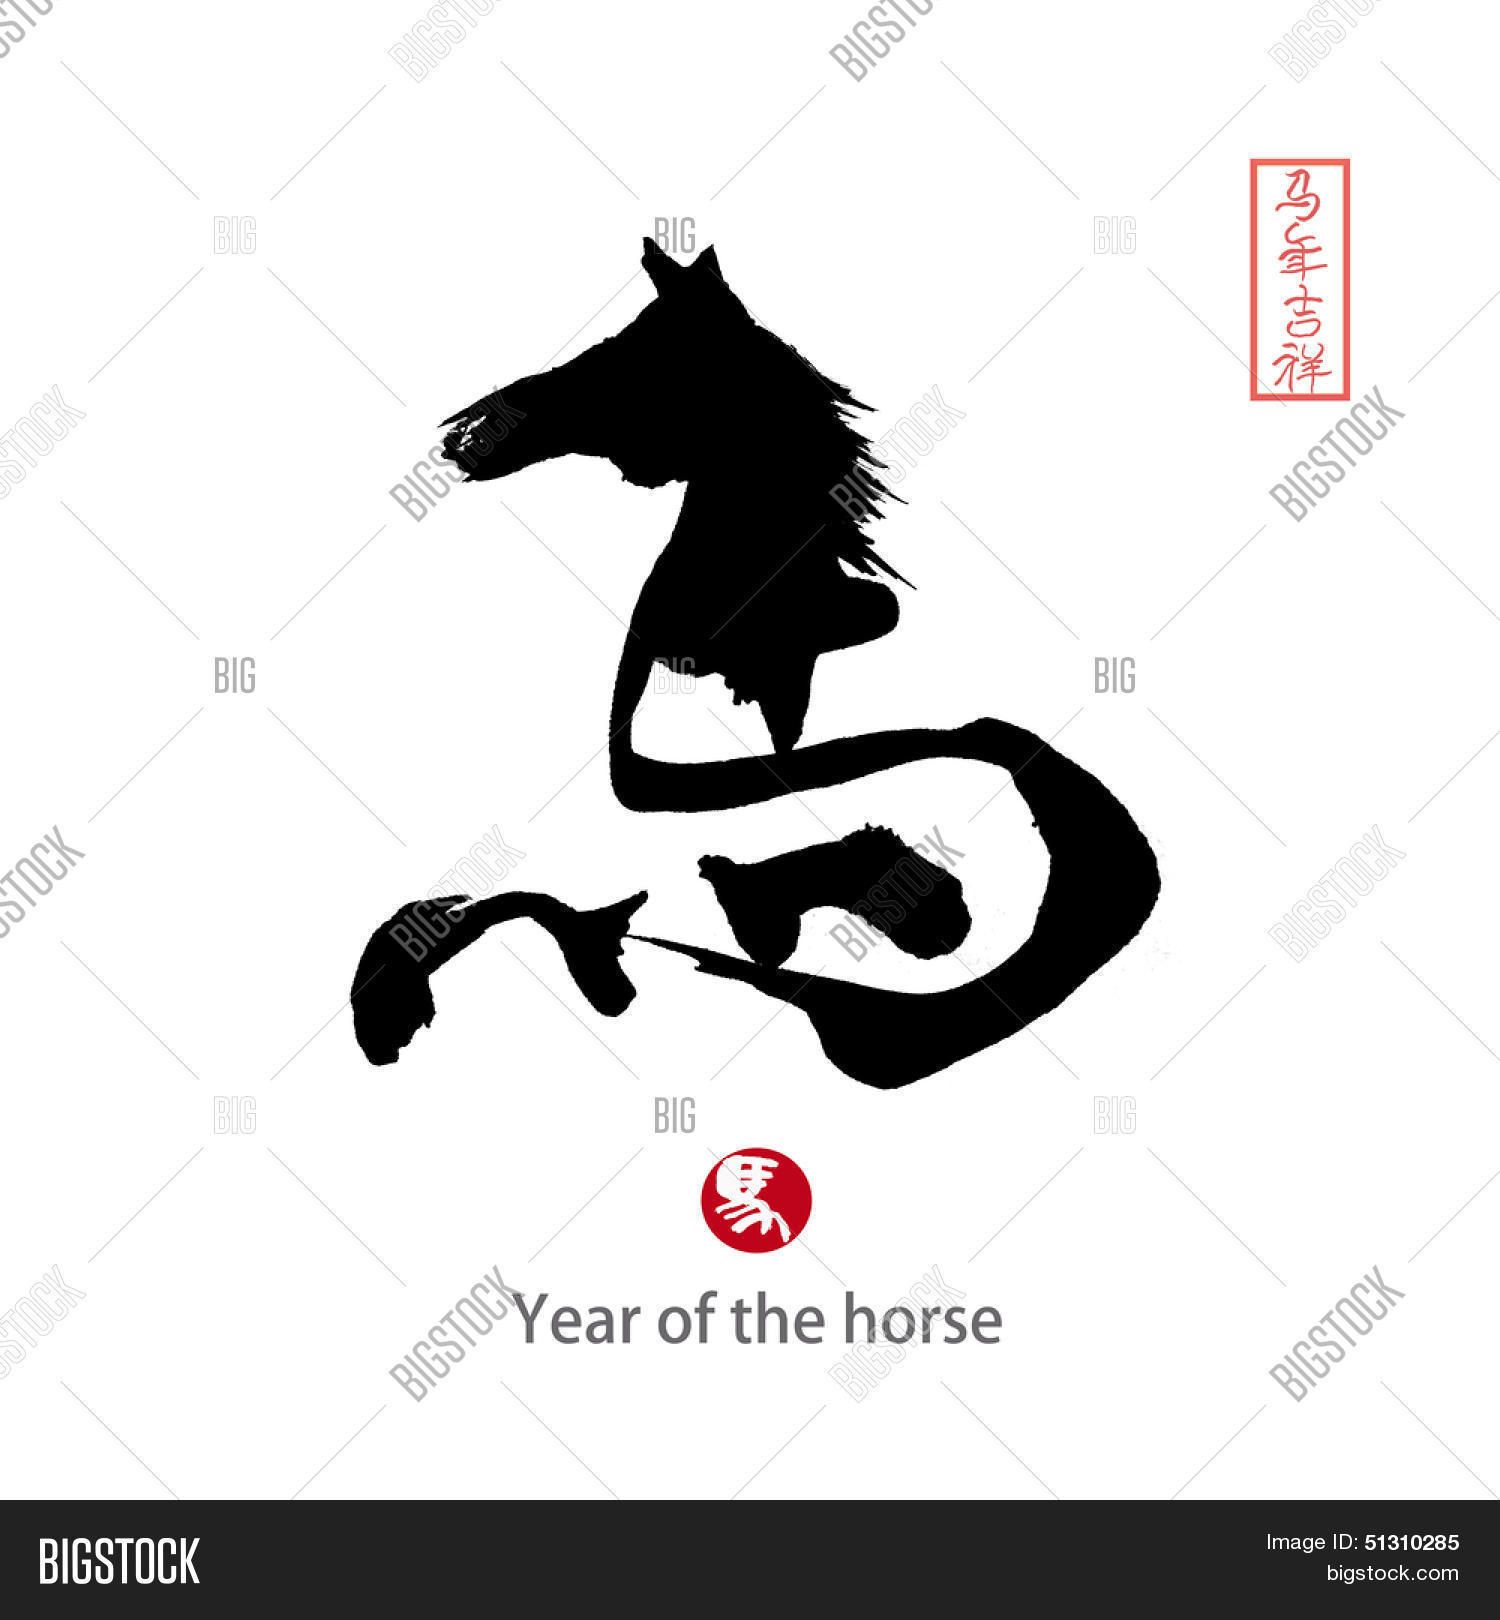 2014 Year Horse Image Photo Free Trial Bigstock